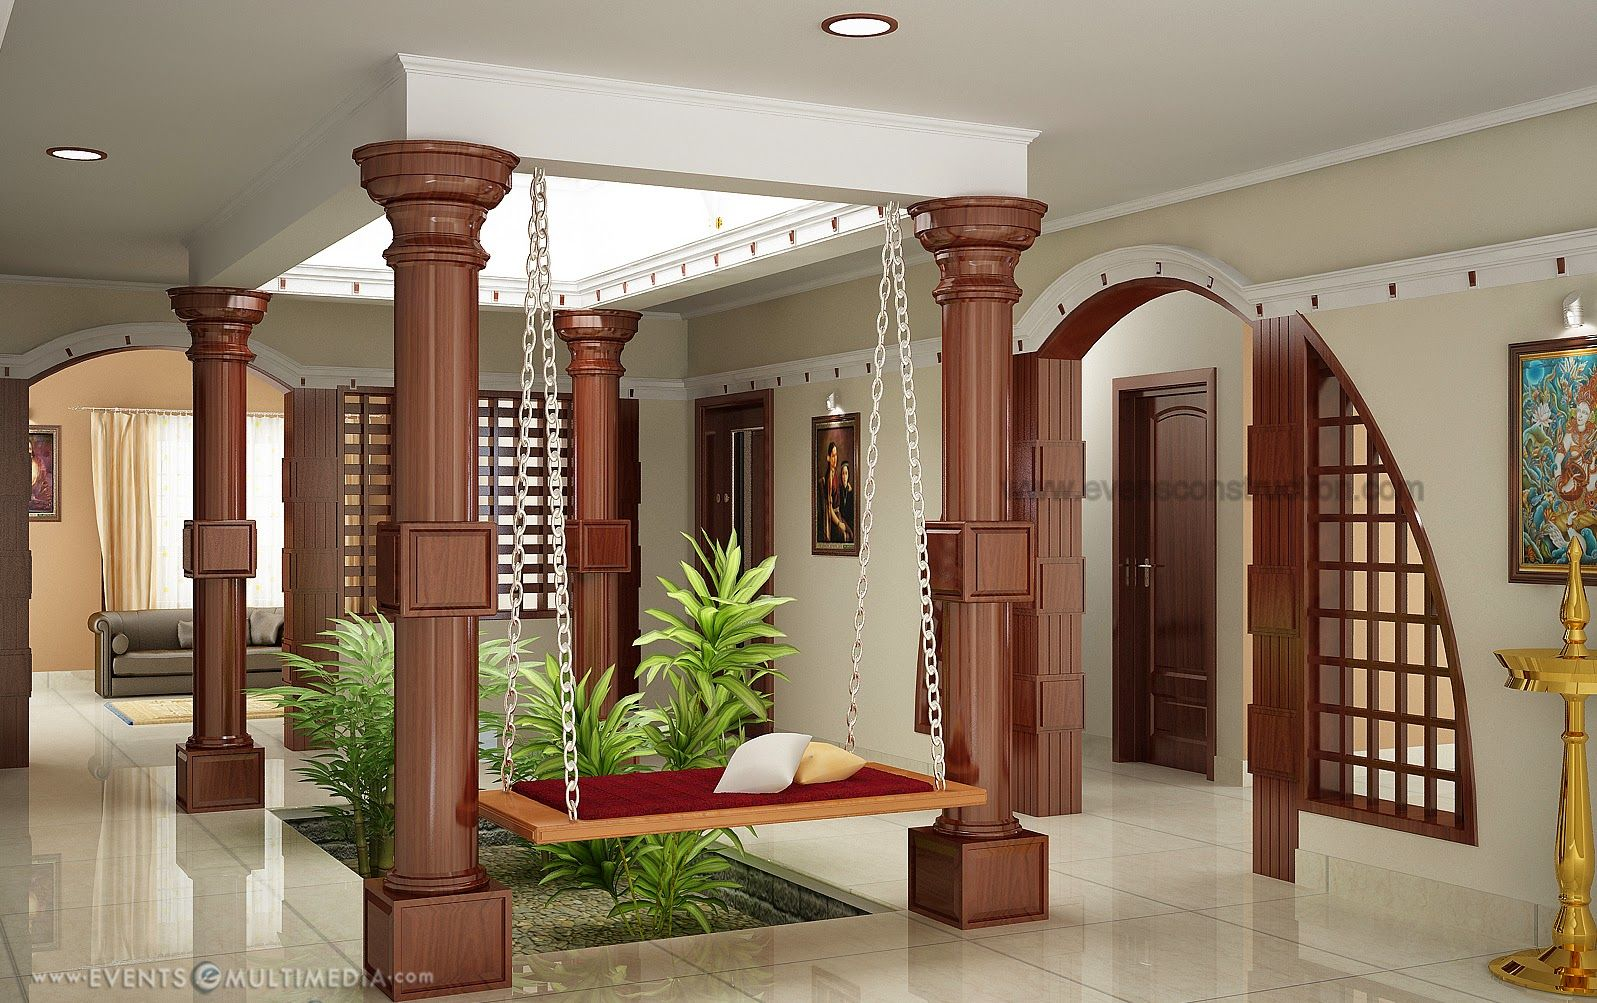 Interior design kerala google search inside and for Interior courtyard designs ideas